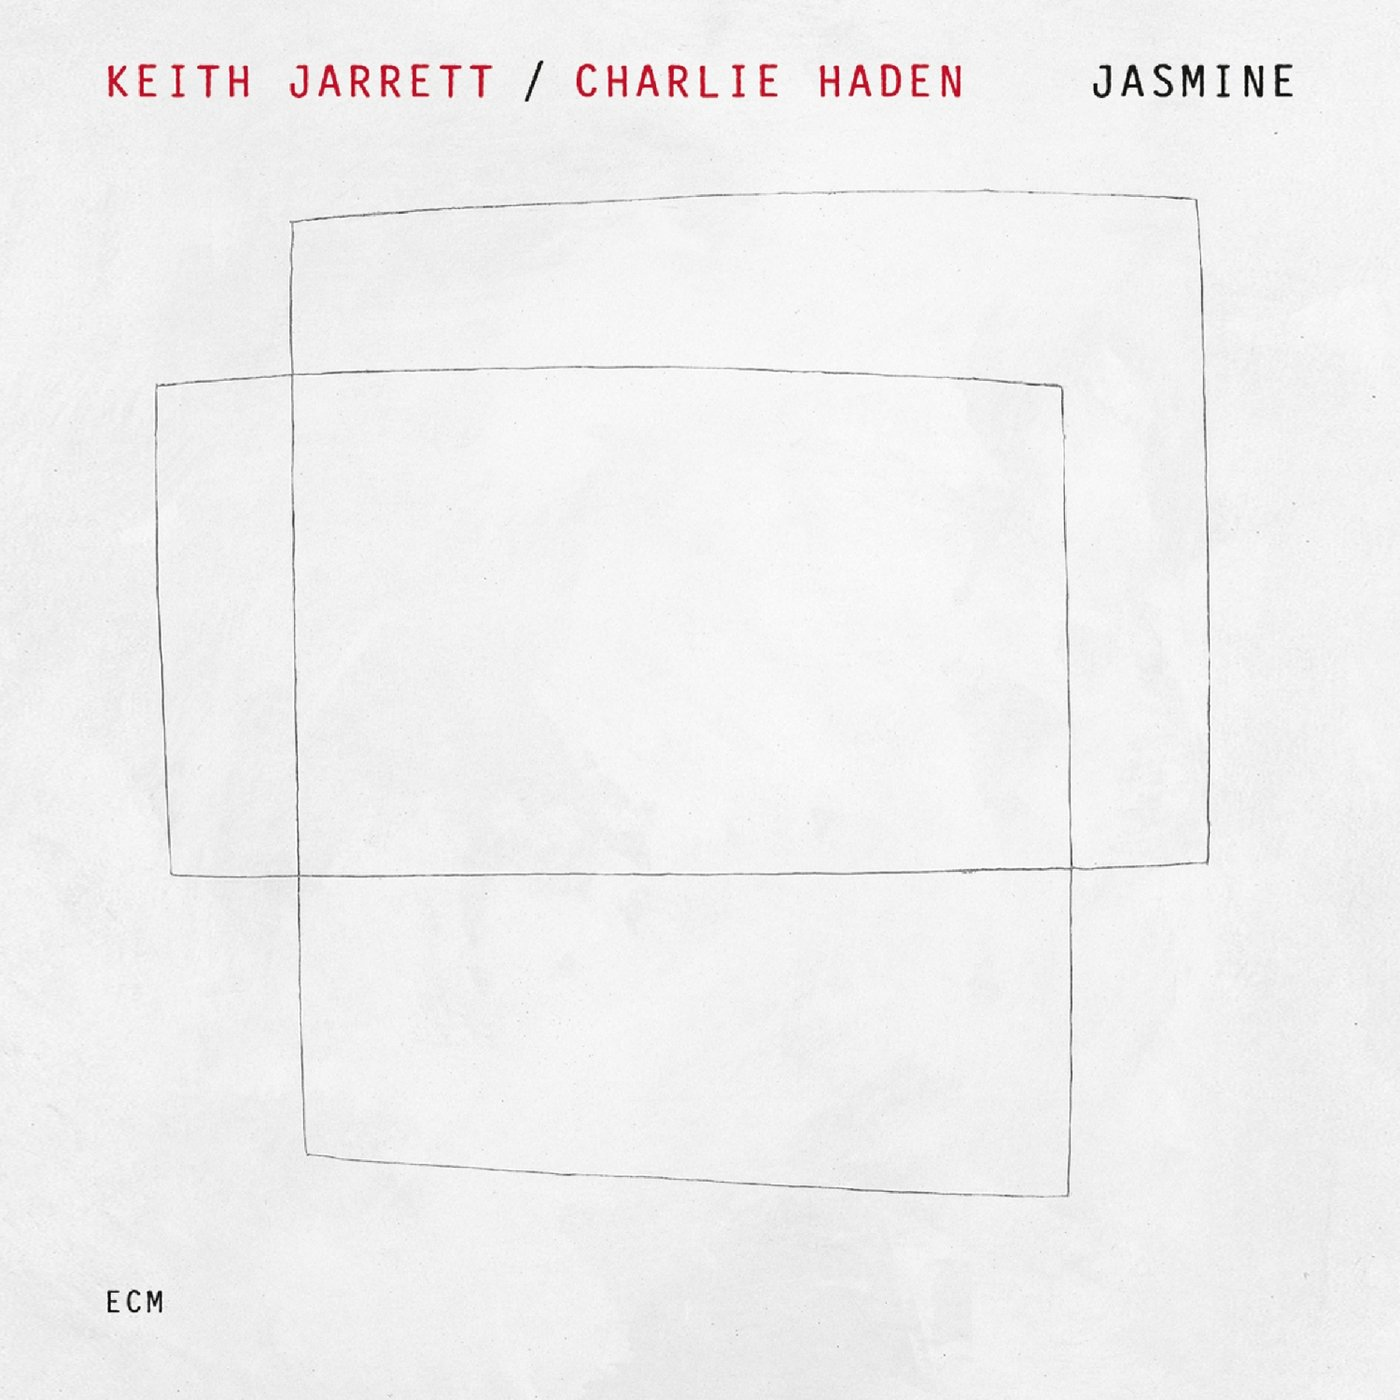 Keith Jarrett and Charlie Haden, Jasmine